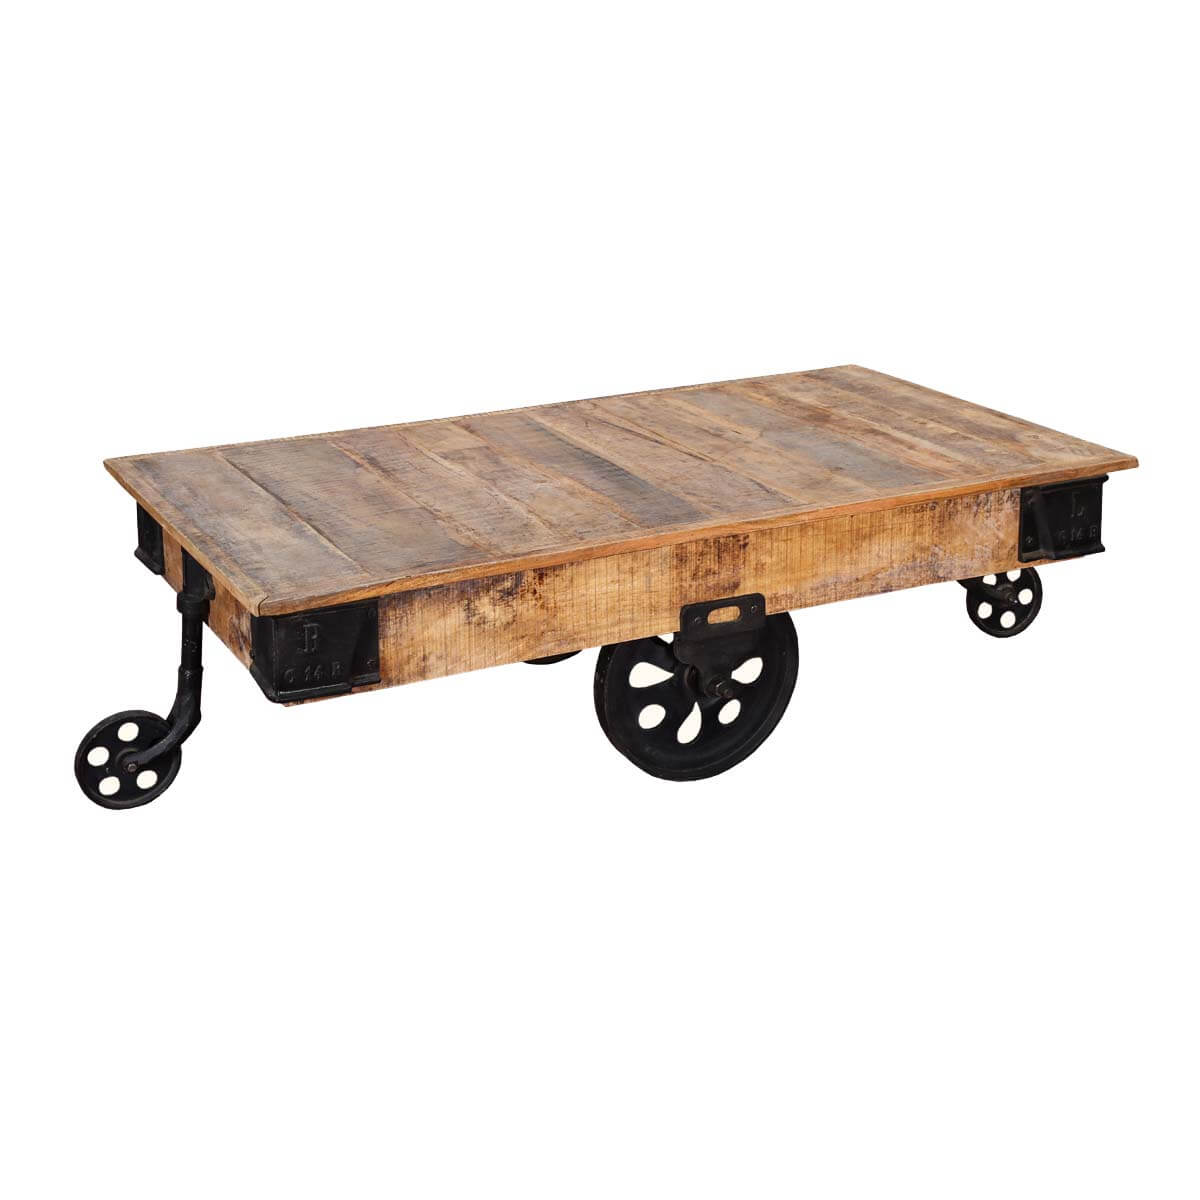 Industrial Coffee Table Images: Industrial Rustic Factory Cart Coffee Table